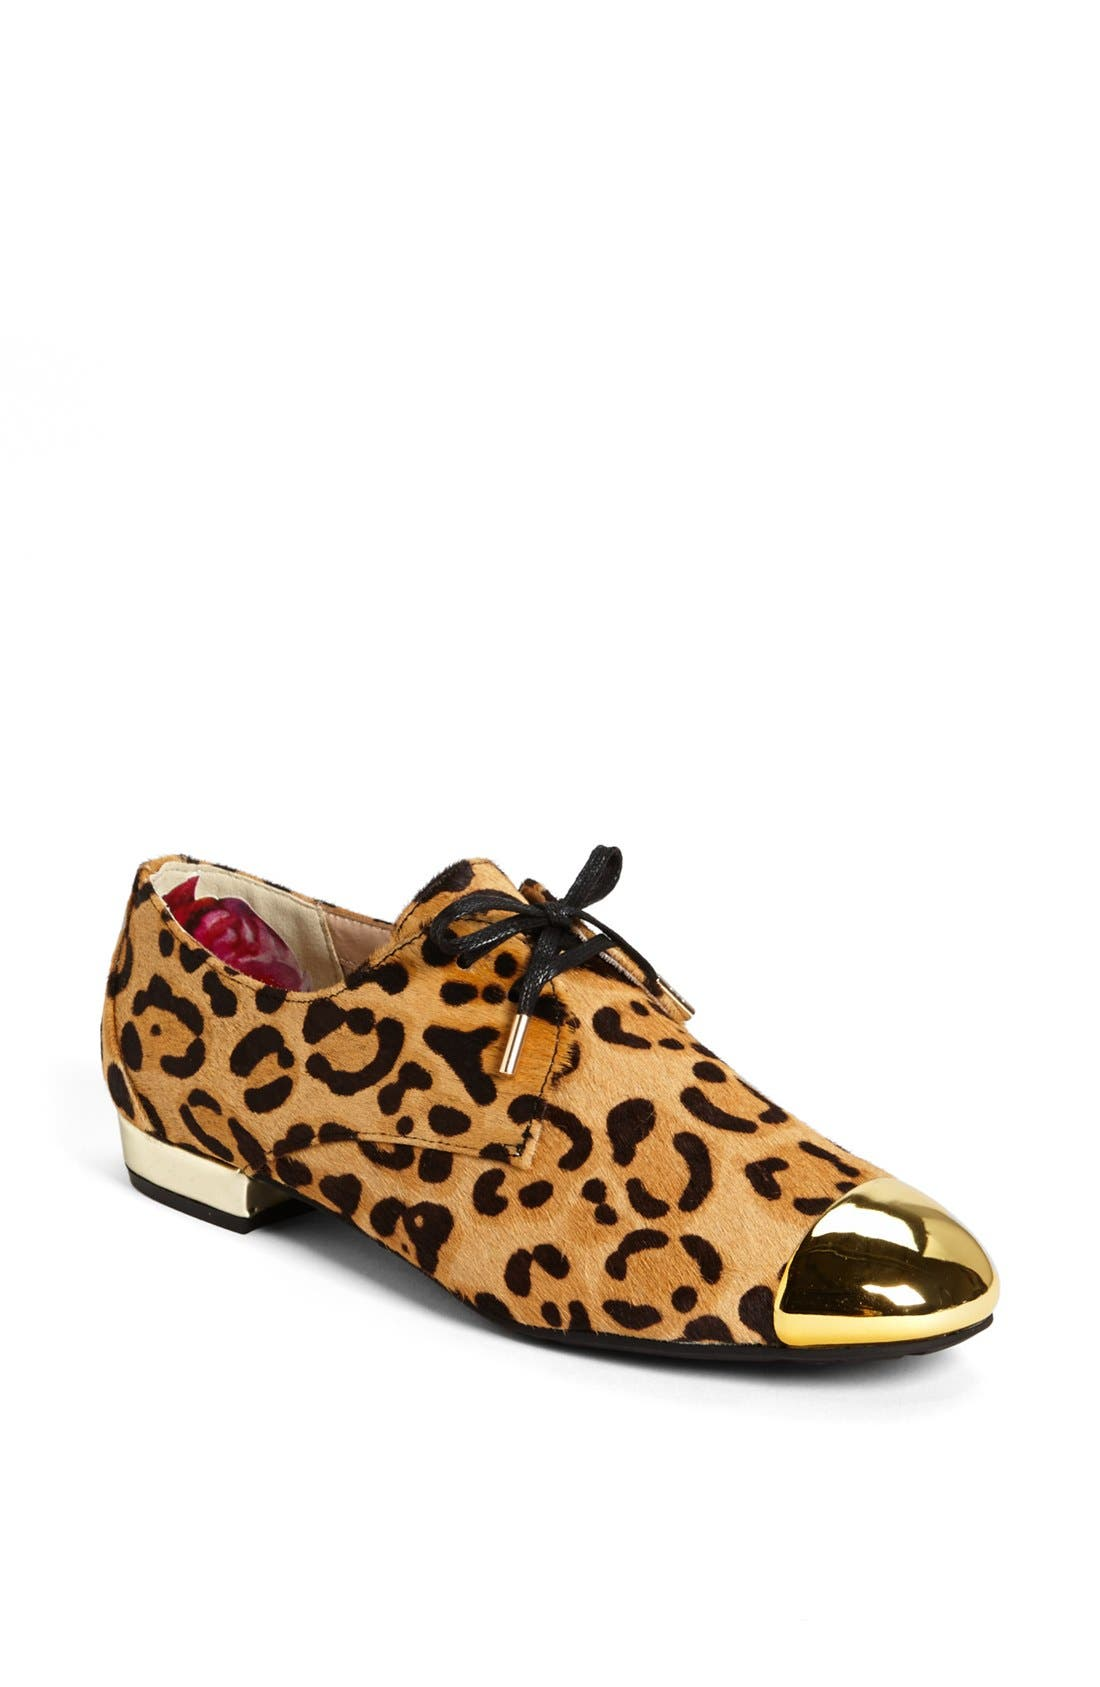 Alternate Image 1 Selected - Ted Baker London 'Kape 2' Genuine Calf Hair Flat